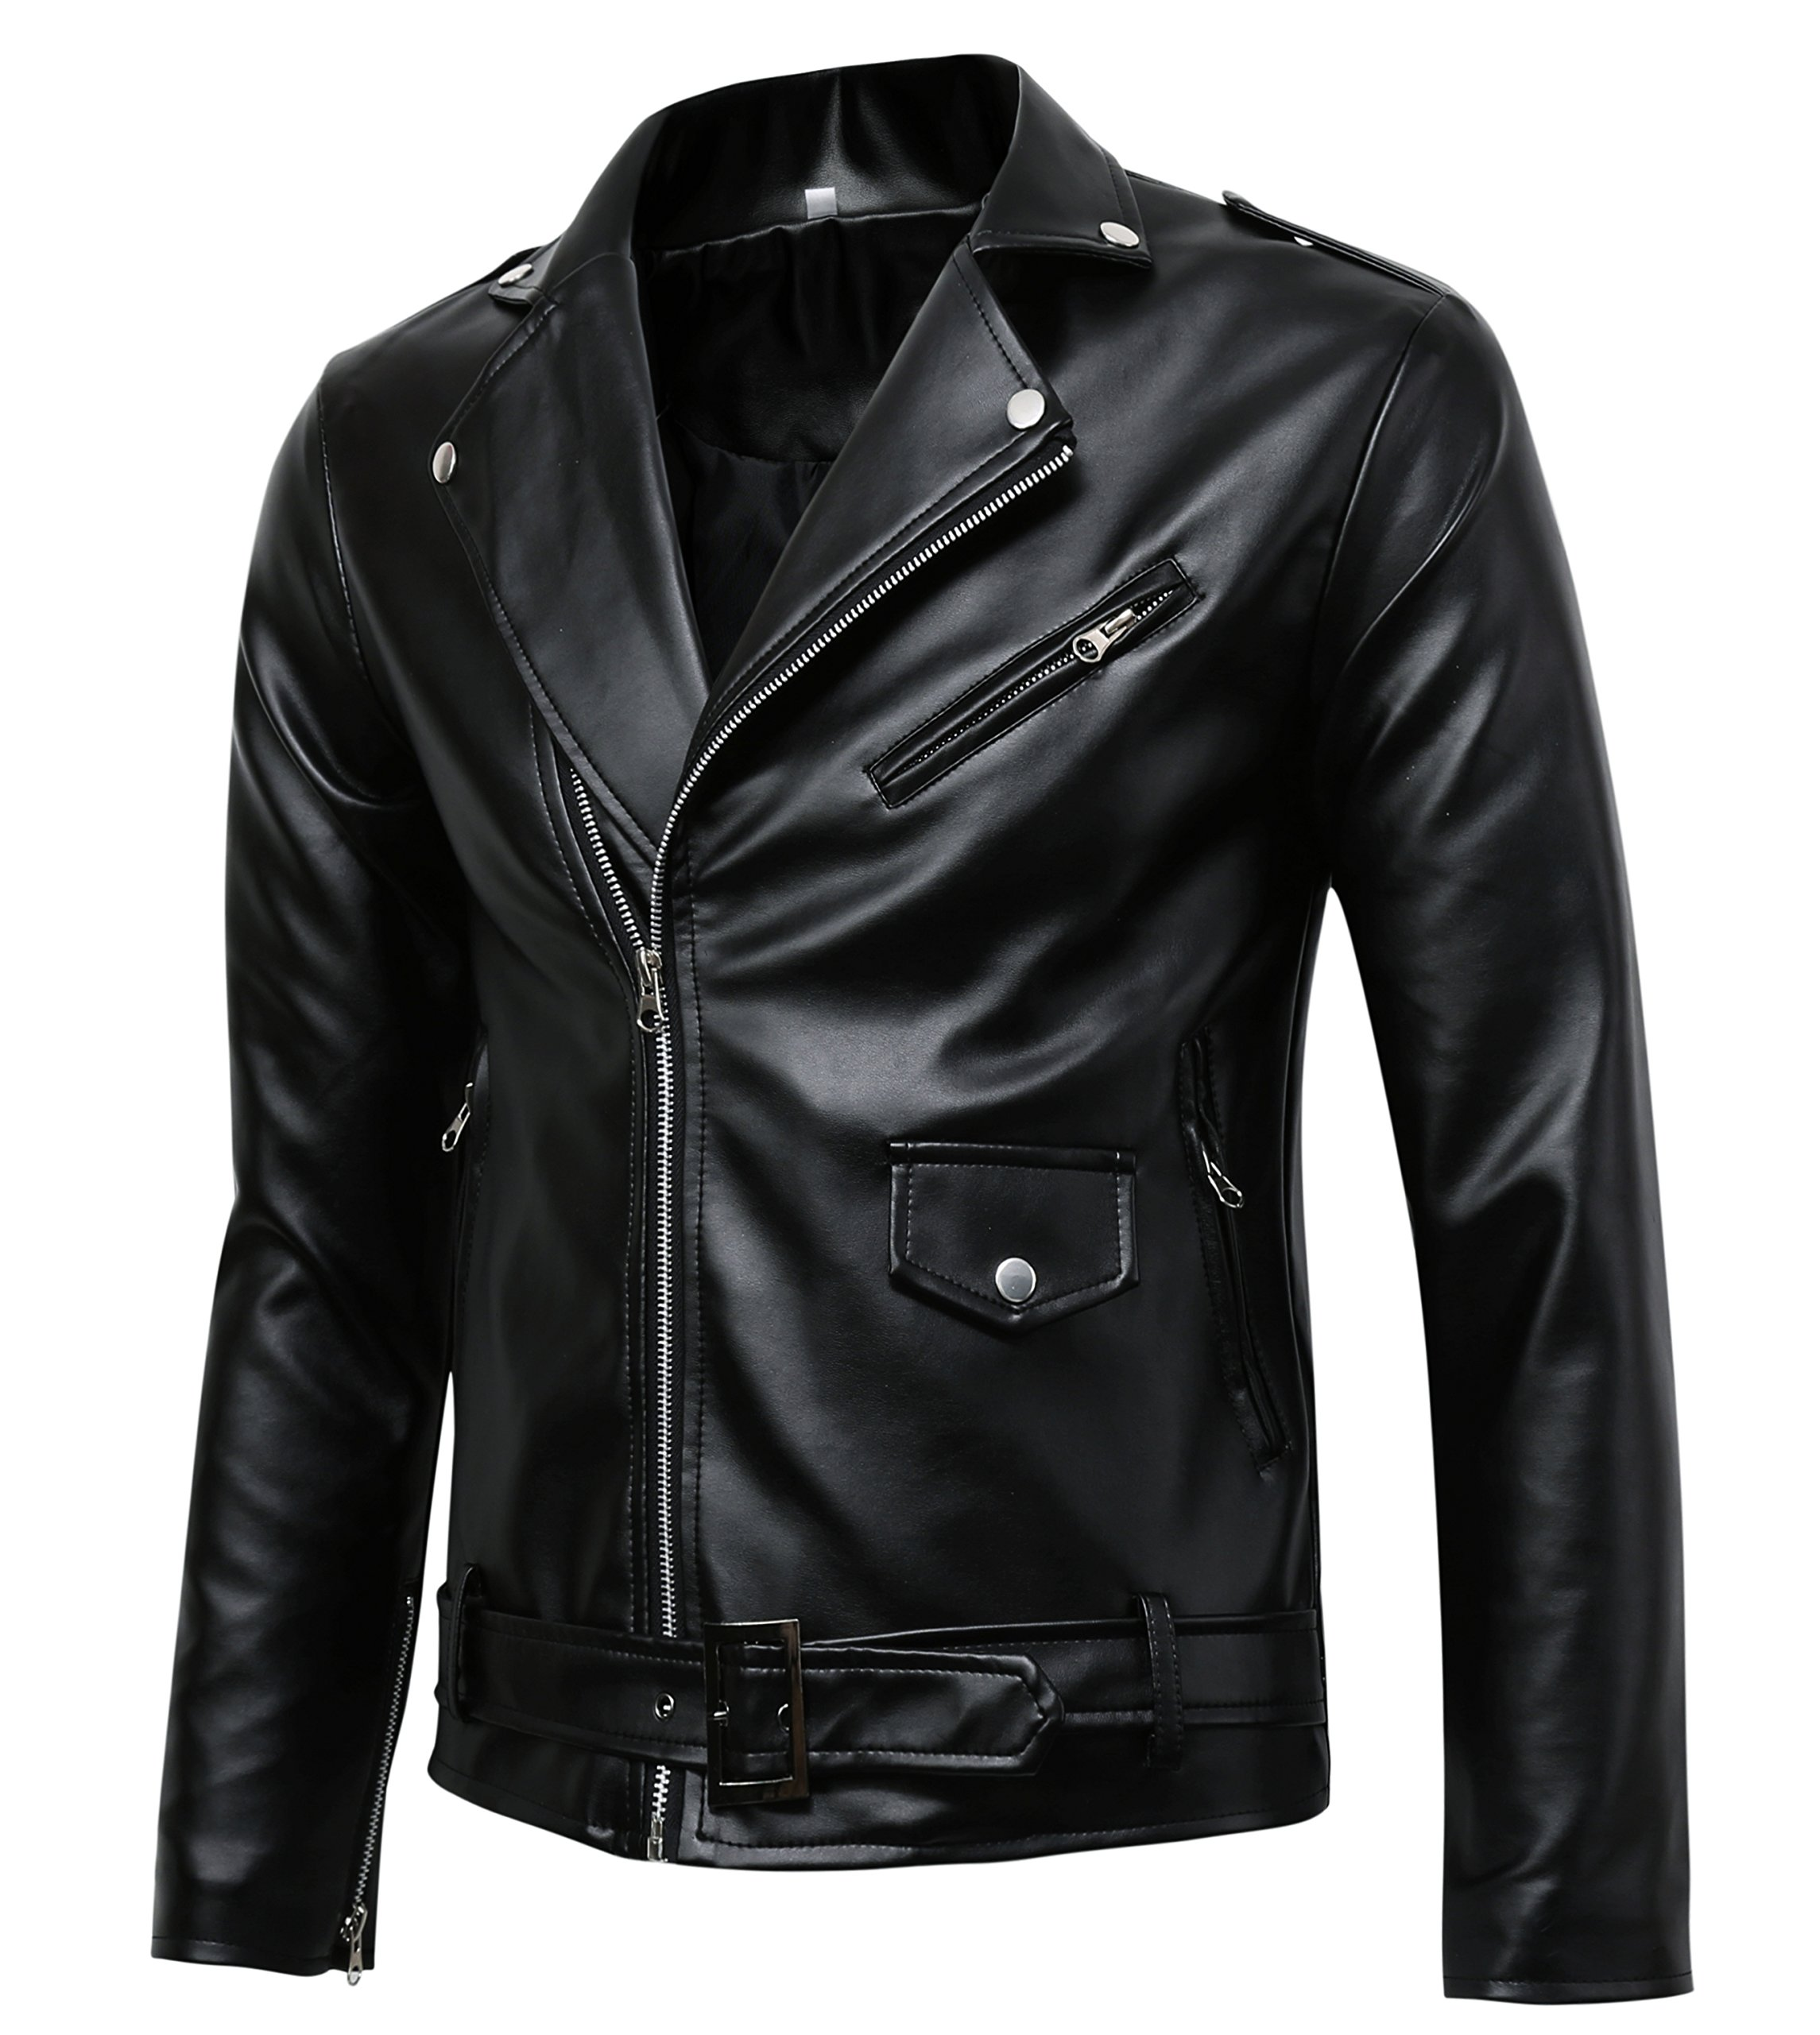 Men's Classic Police Style Faux Leather Motorcycle Jacket (Y012, XS) Black by Beninos